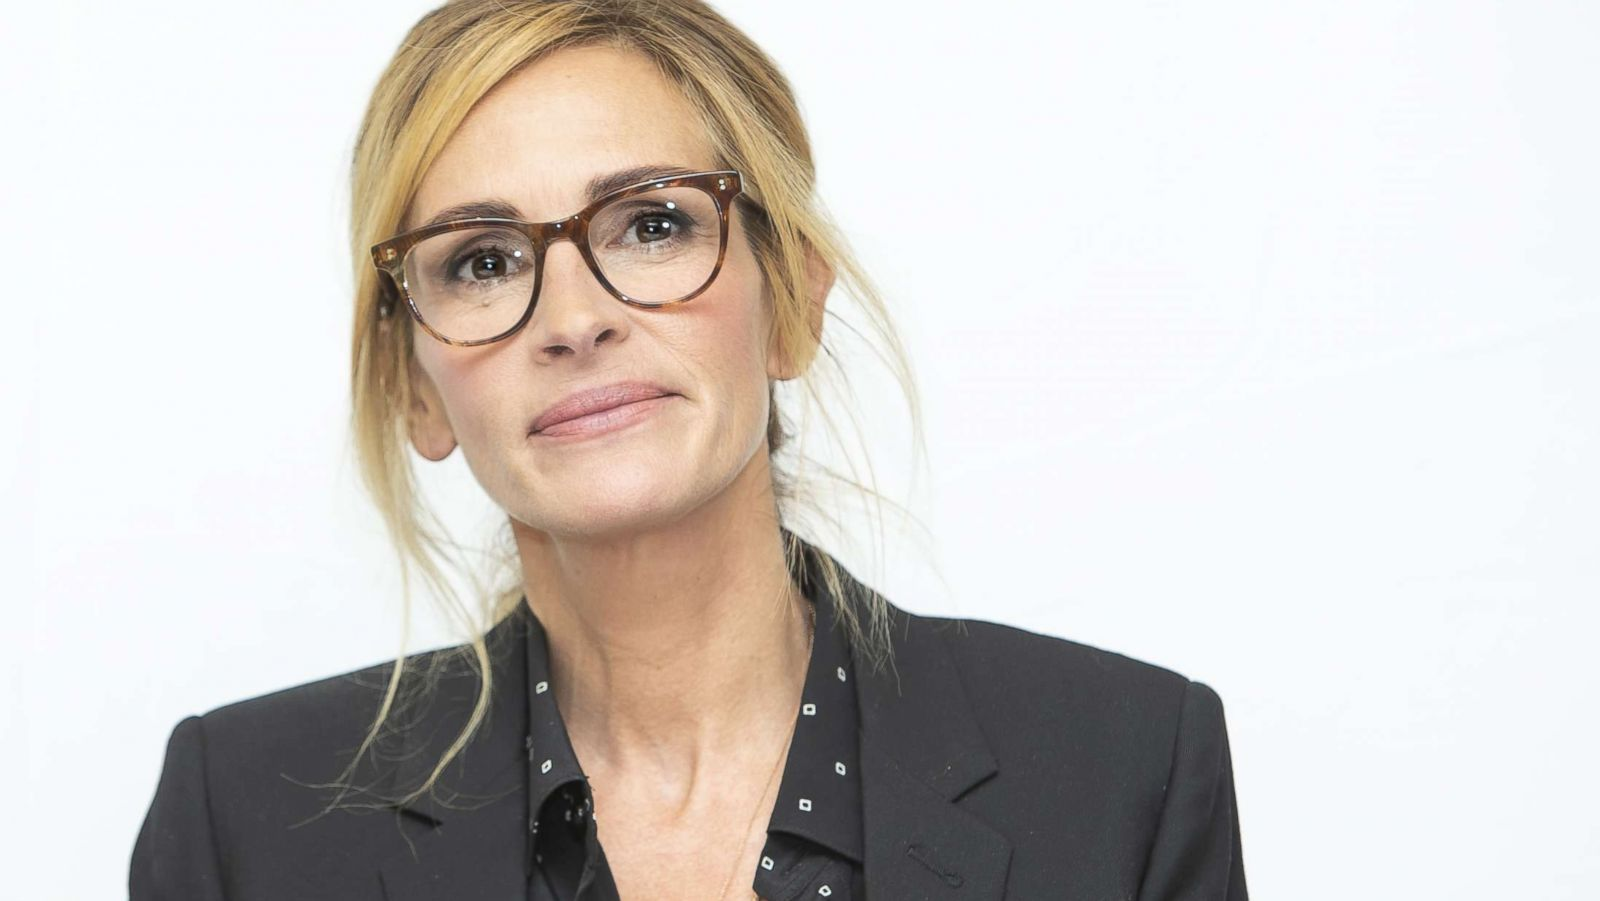 Julia Roberts talks ageism and gender parity in Hollywood - ABC News